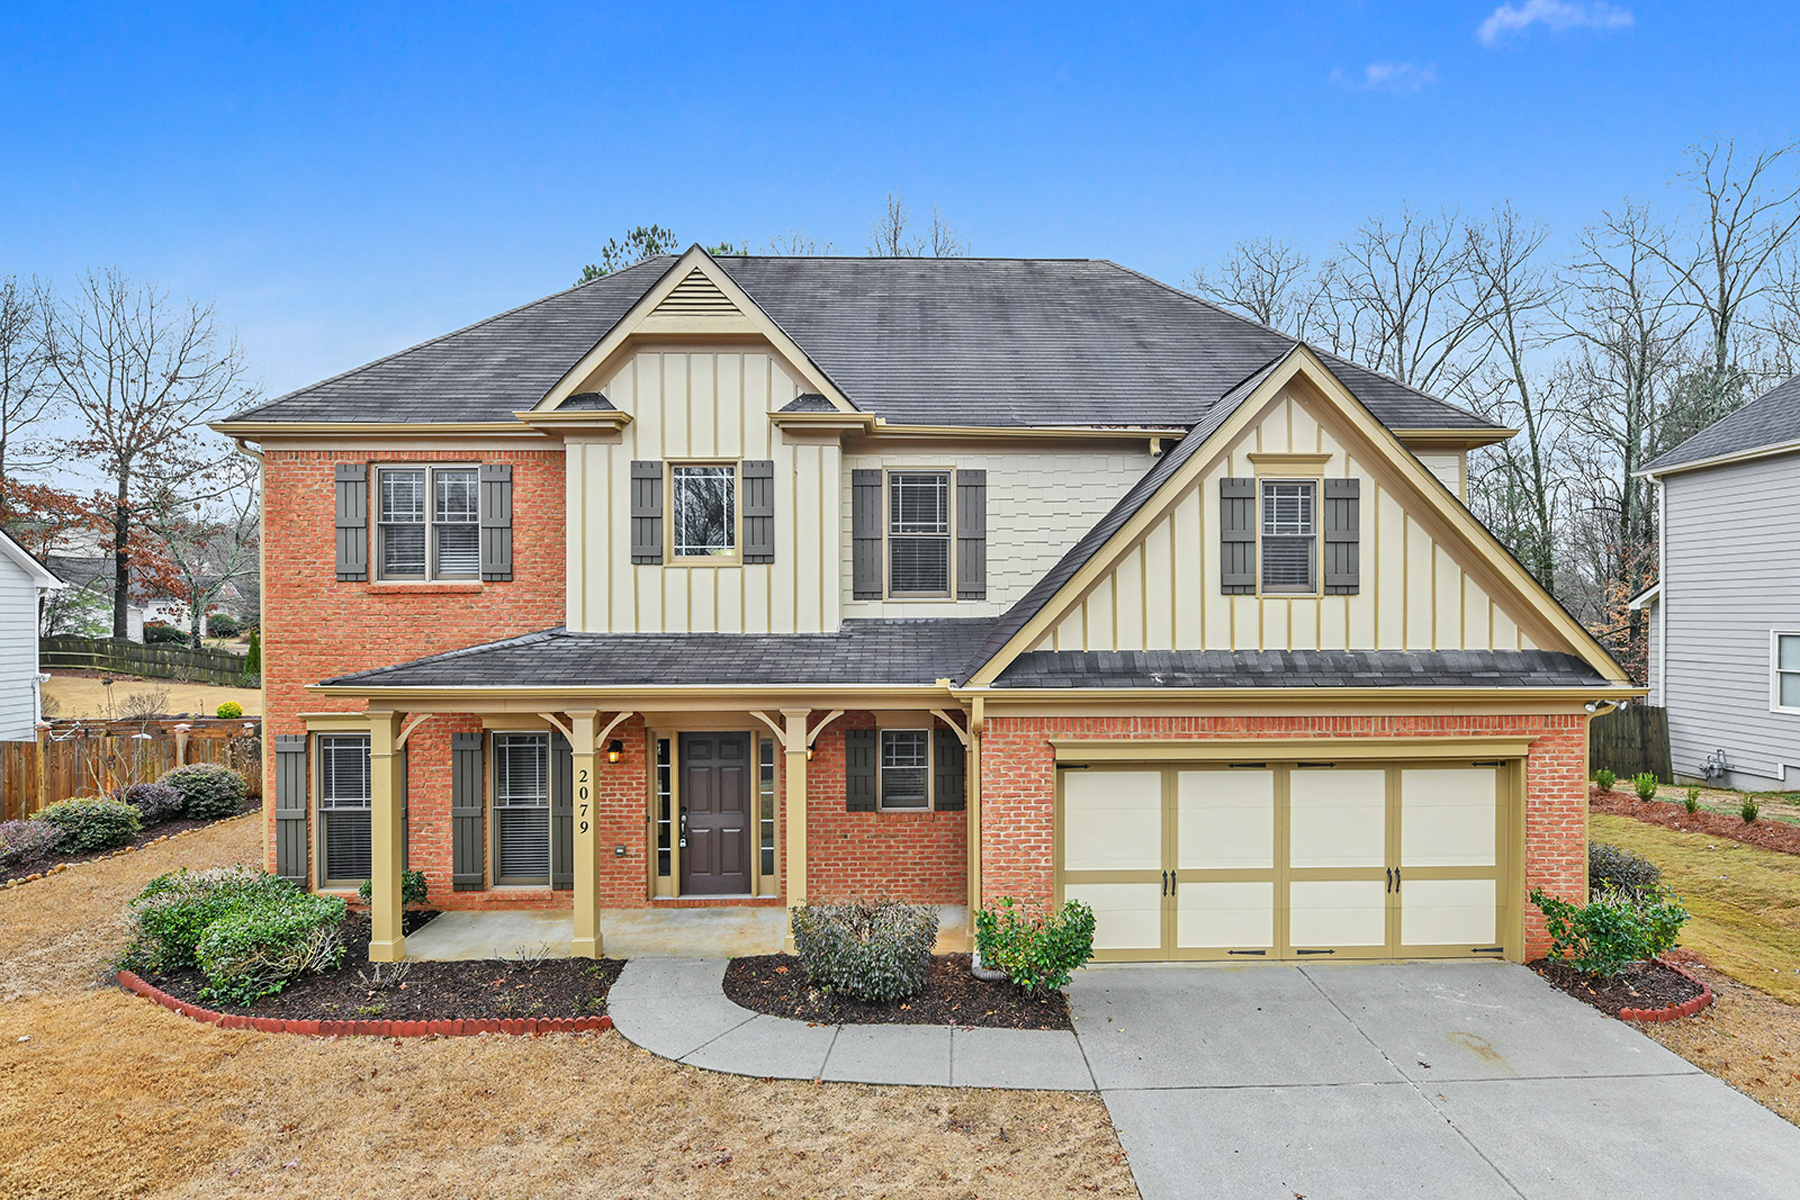 Single Family Homes for Active at Beautiful Craftsman On Spacious Level Lot 2079 Ivey Chase Drive Dacula, Georgia 30019 United States